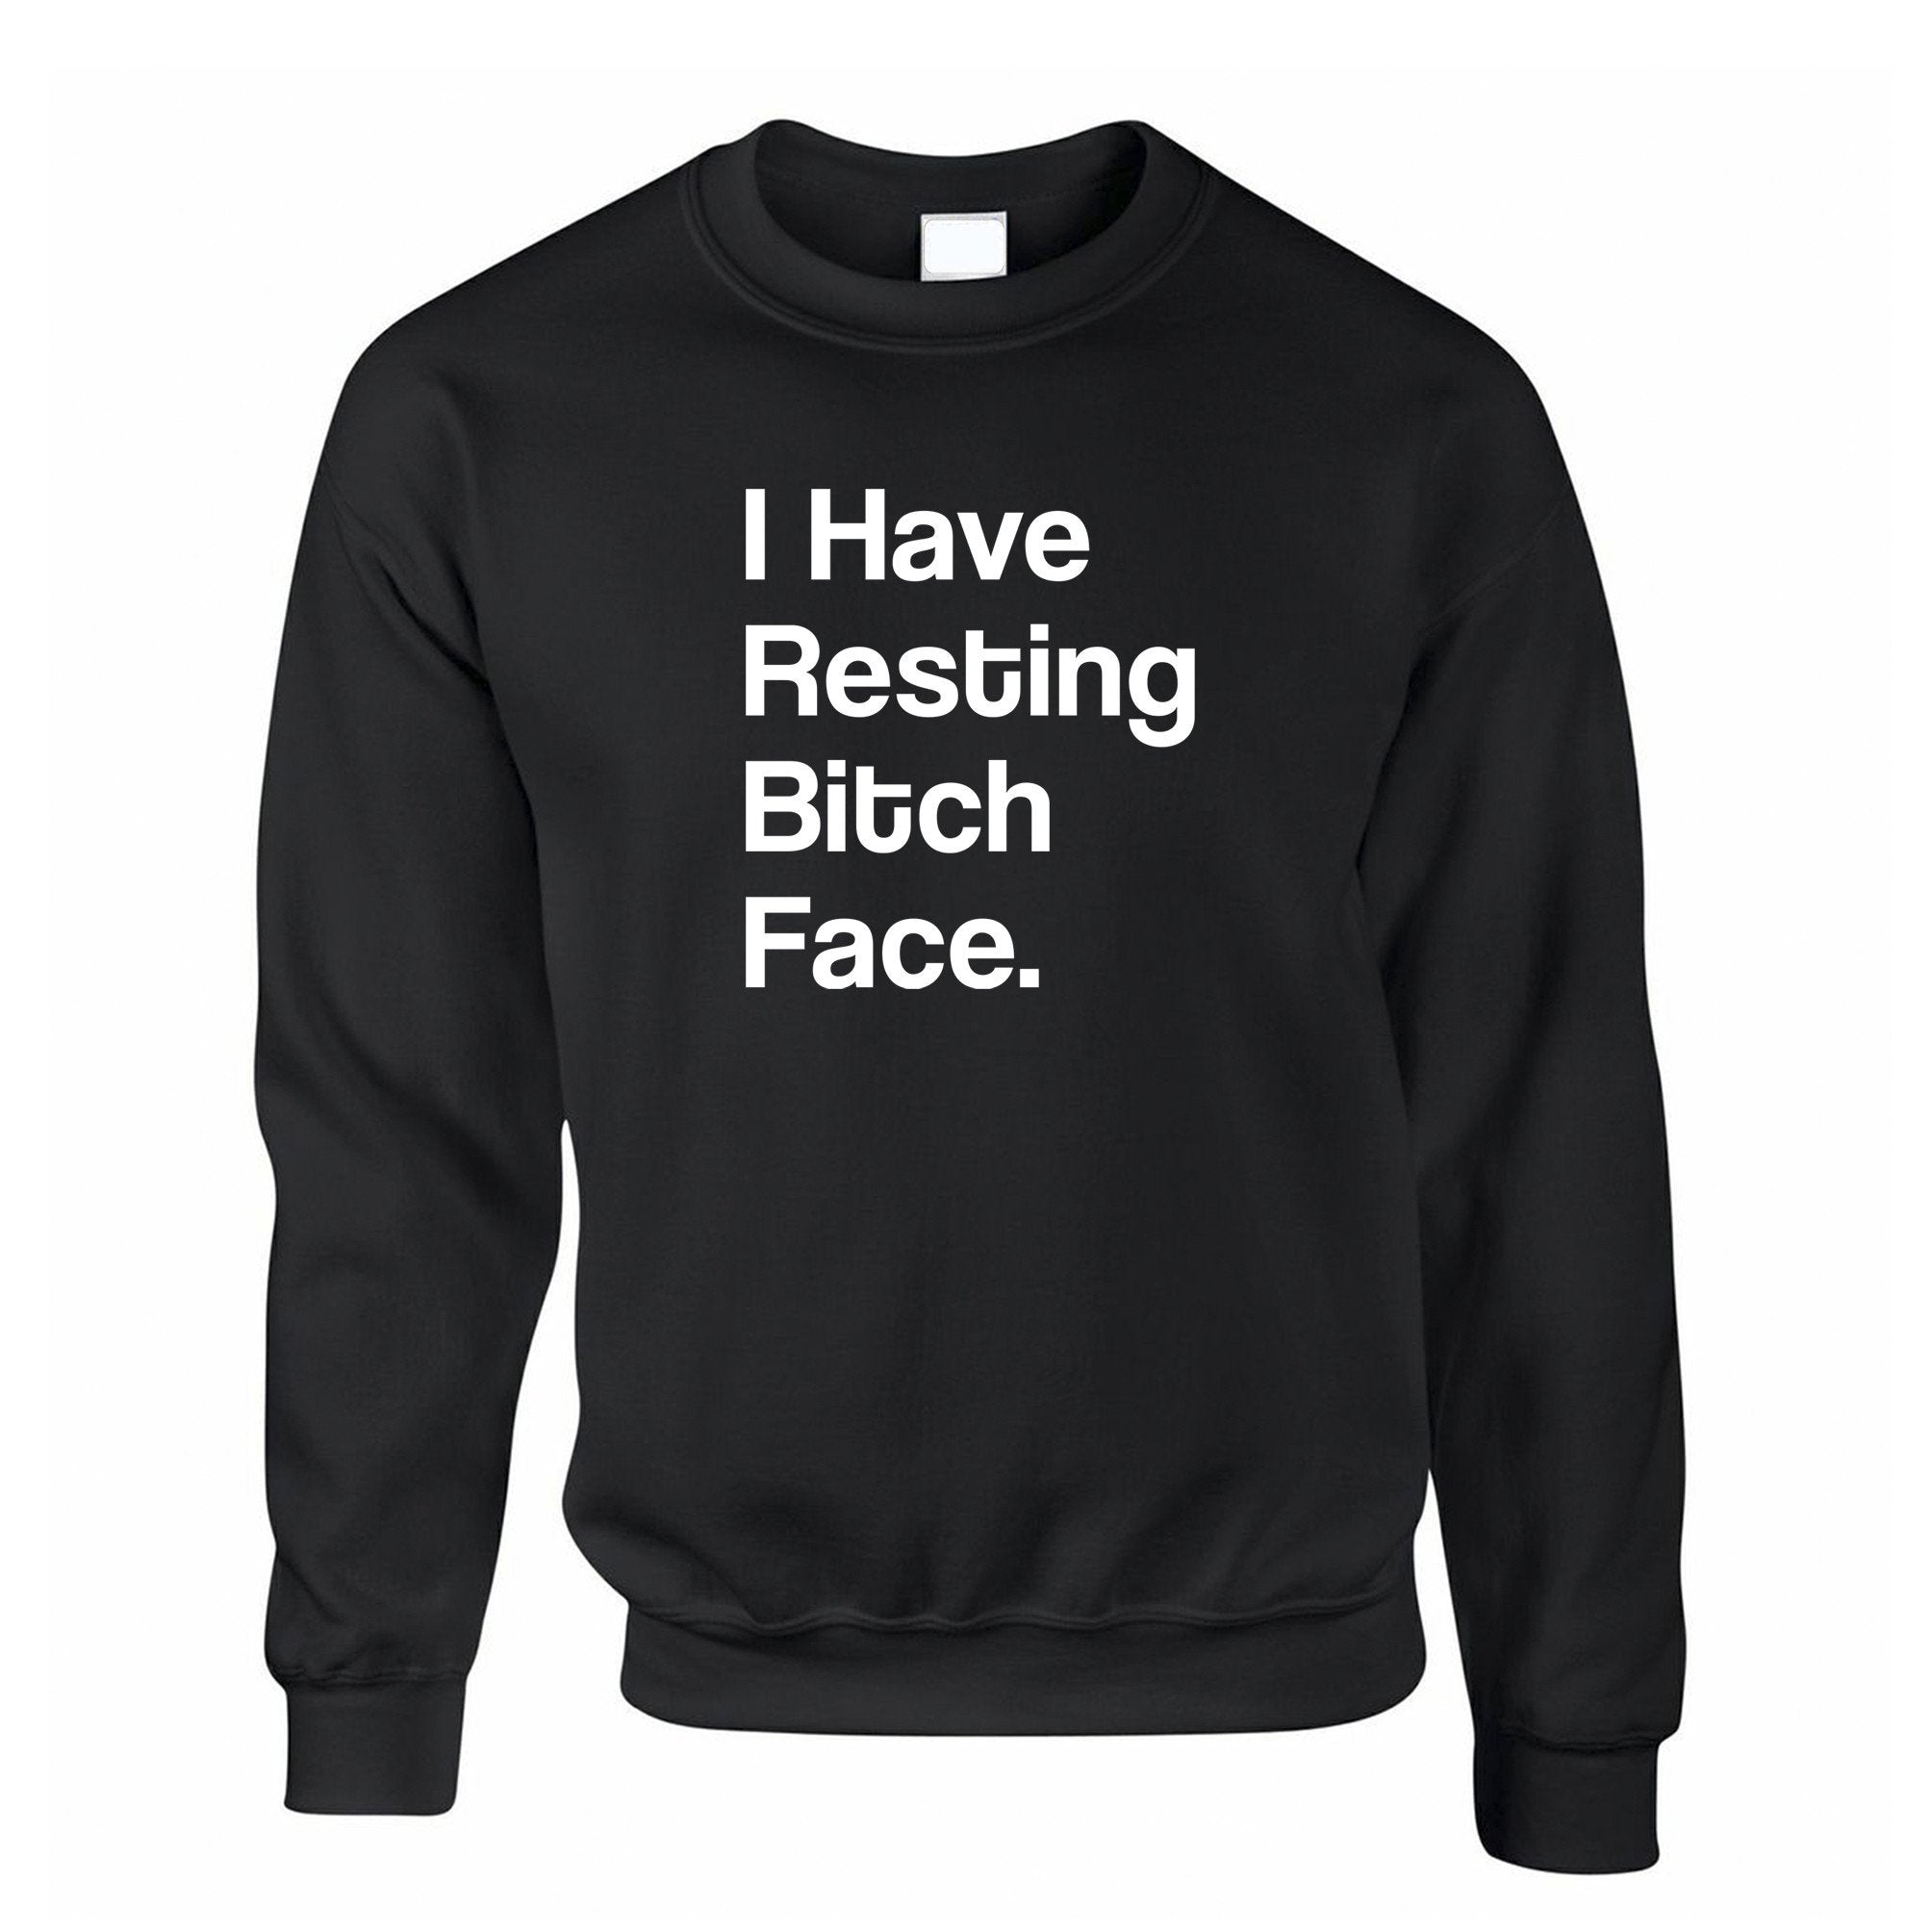 I Have Resting Bitch Face Expressionless Mean Sad Sweatshirt Jumper